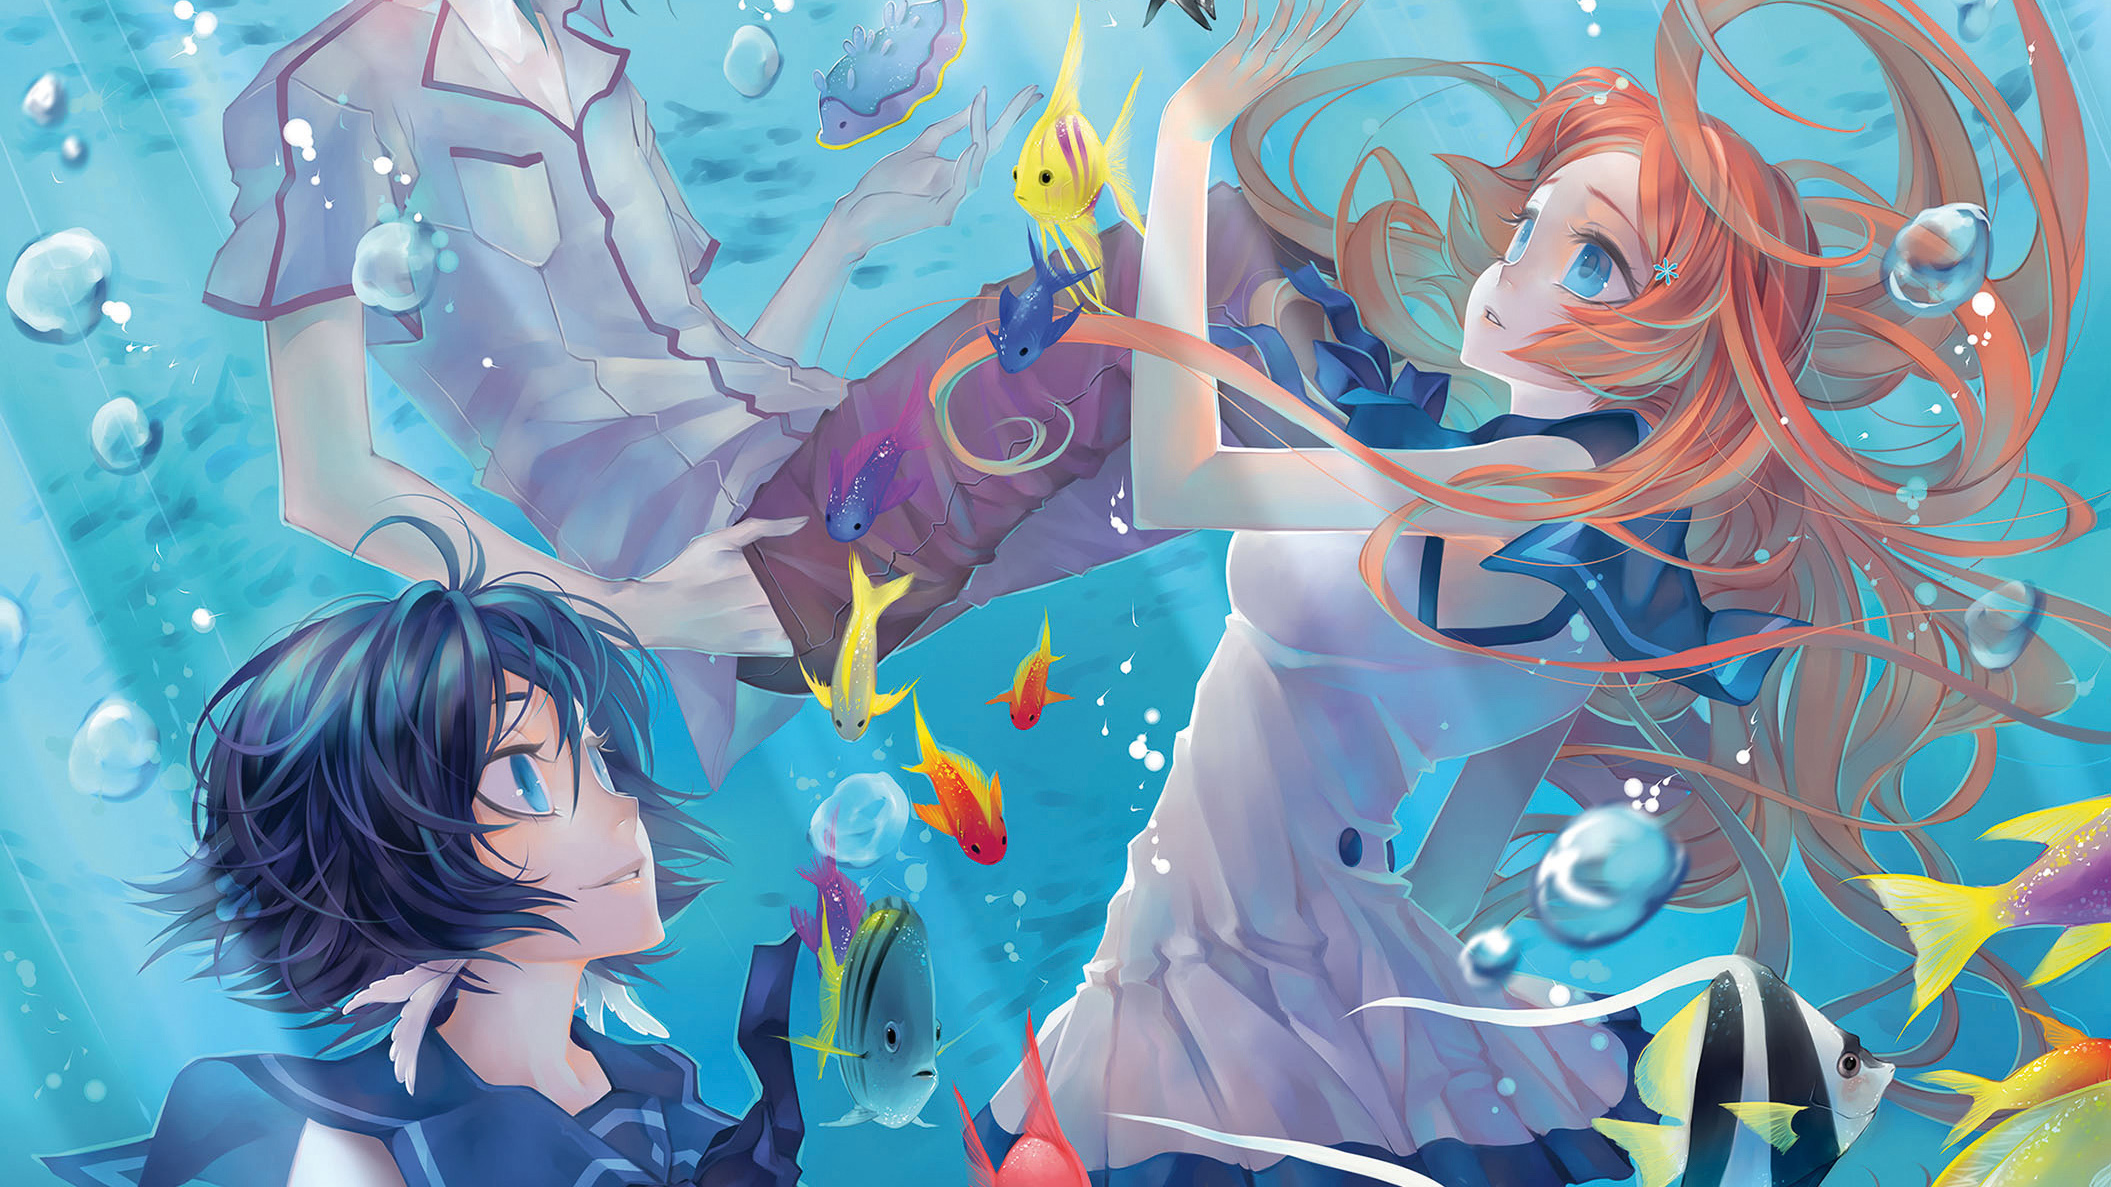 6 manga artists to watch out for | Creative Bloq